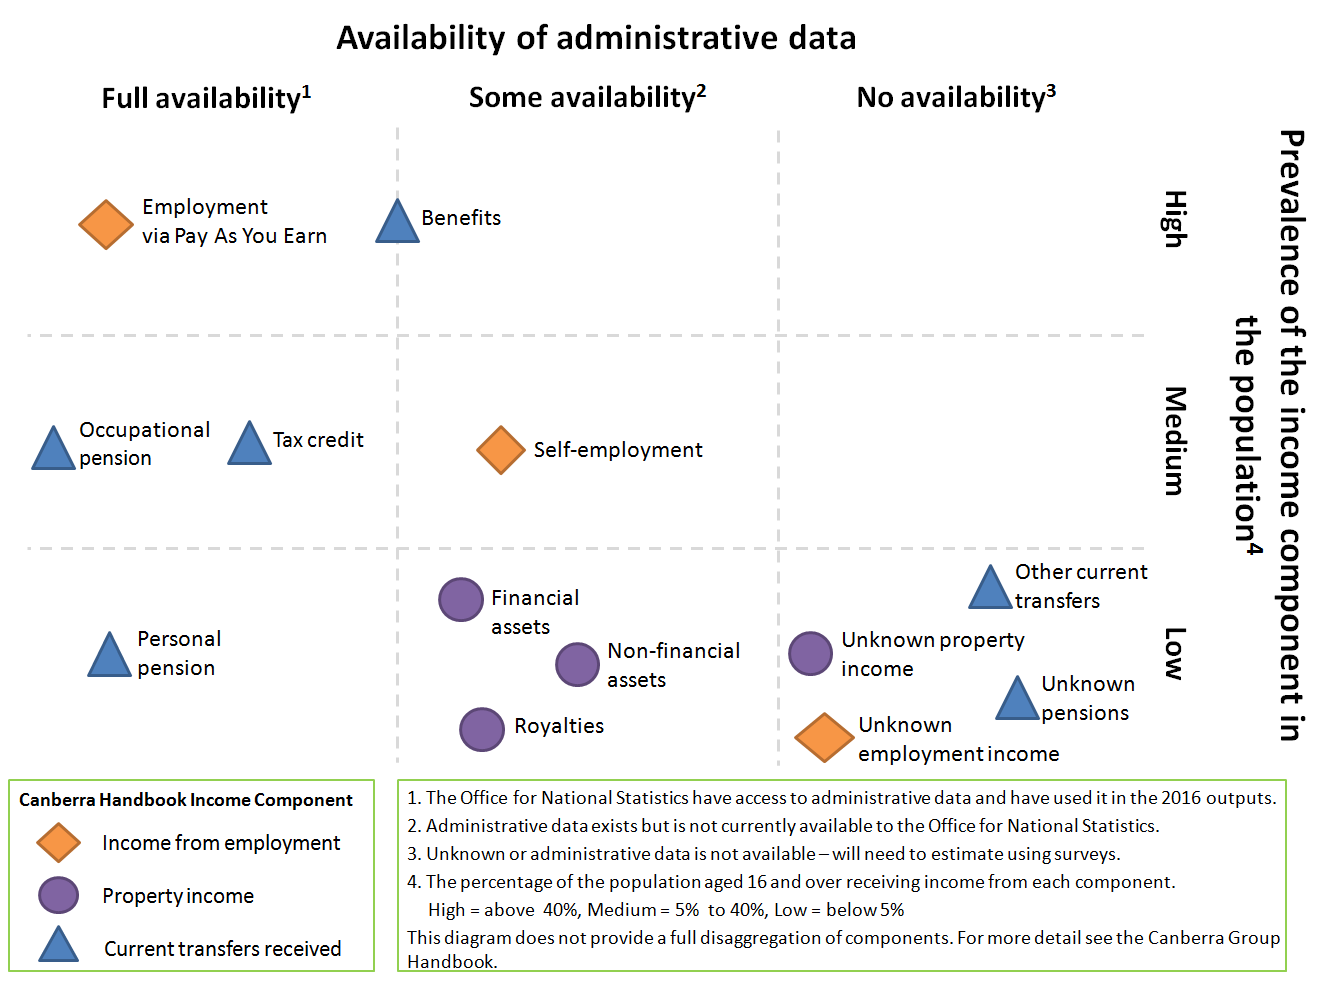 The availability of administrative data on the different income components varies greatly.